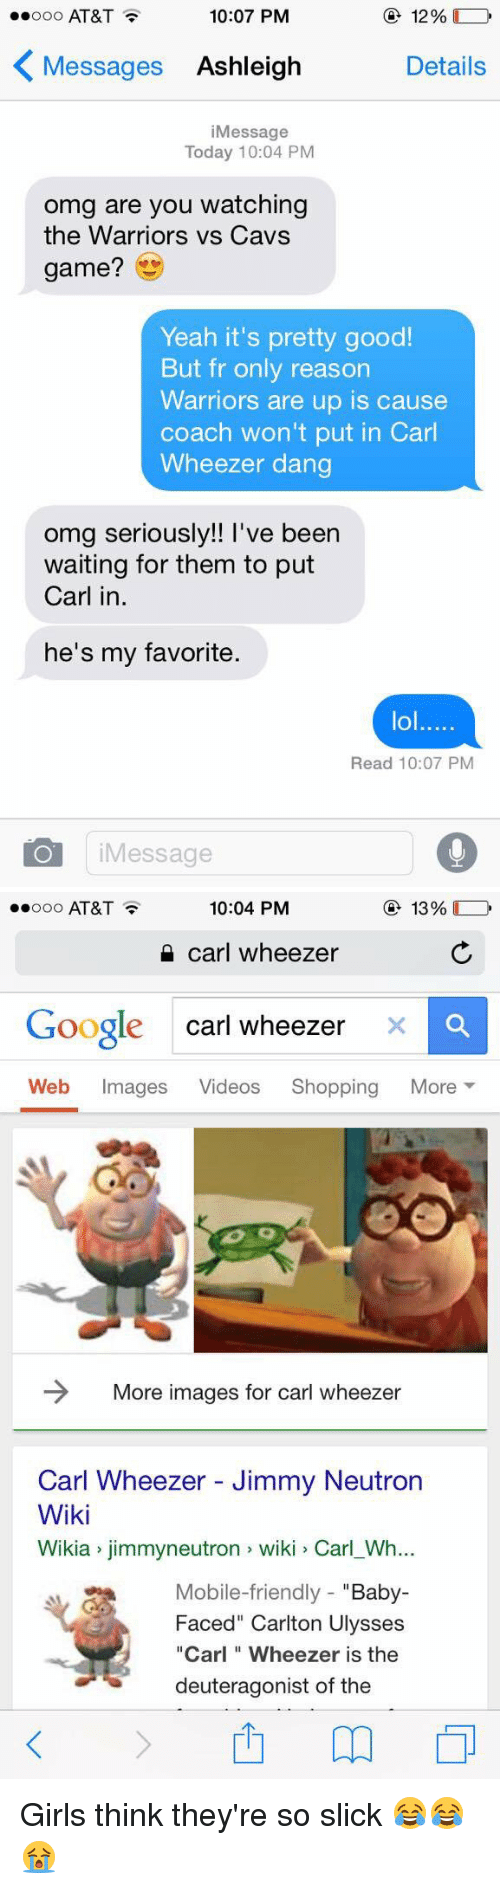 """Carl Wheezer: 10:07 PM  12%  AT&T  K Messages Ashleigh  Details  i Message  Today 10:04 PM  omg are you watching  the Warriors vs Cavs  game?  Yeah it's pretty good!  But fr only reason  Warriors are up is cause  coach won't put in Carl  Wheezer dang  omg seriously!! Ve been  waiting for them to put  Carl in  he's my favorite.  lol.....  Read 10:07 PM  Message   10:04 PM  13%  ooooo AT&T  carl wheezer  Google Carl wheezer  x a  Web  mages  Videos  Shopping  More  More images for Carl wheezer  Carl Wheezer Jimmy Neutron  Wiki  Wikia jimmyneutron wiki Carl Wh...  Mobile-friendly  Baby  Faced"""" Carlton Ulysses  """"Carl Wheezer is the  deuteragonist of the Girls think they're so slick 😂😂😭"""